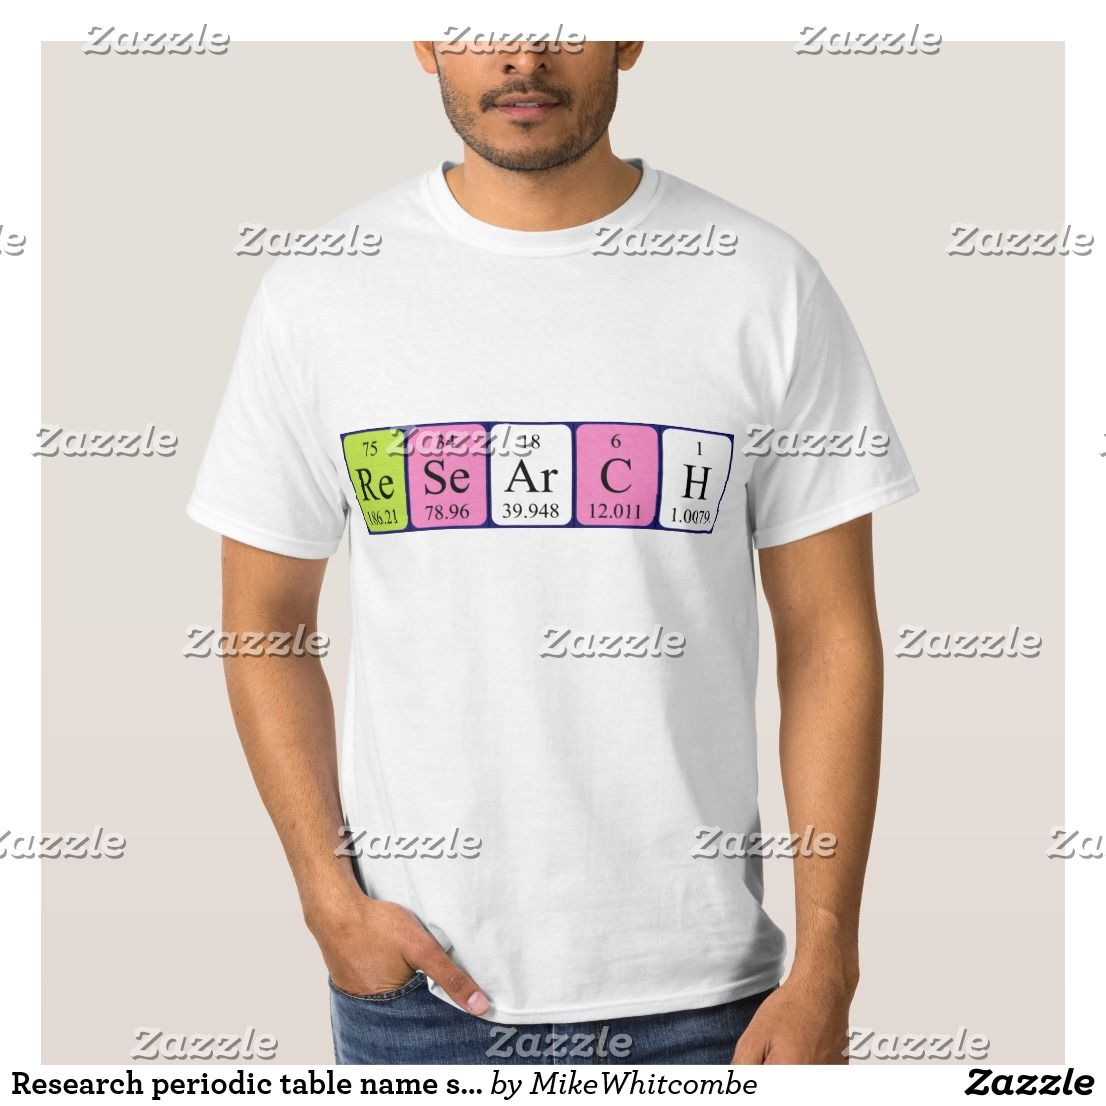 Research periodic table name shirt june 2017 purchases from my research periodic table name shirt gamestrikefo Image collections